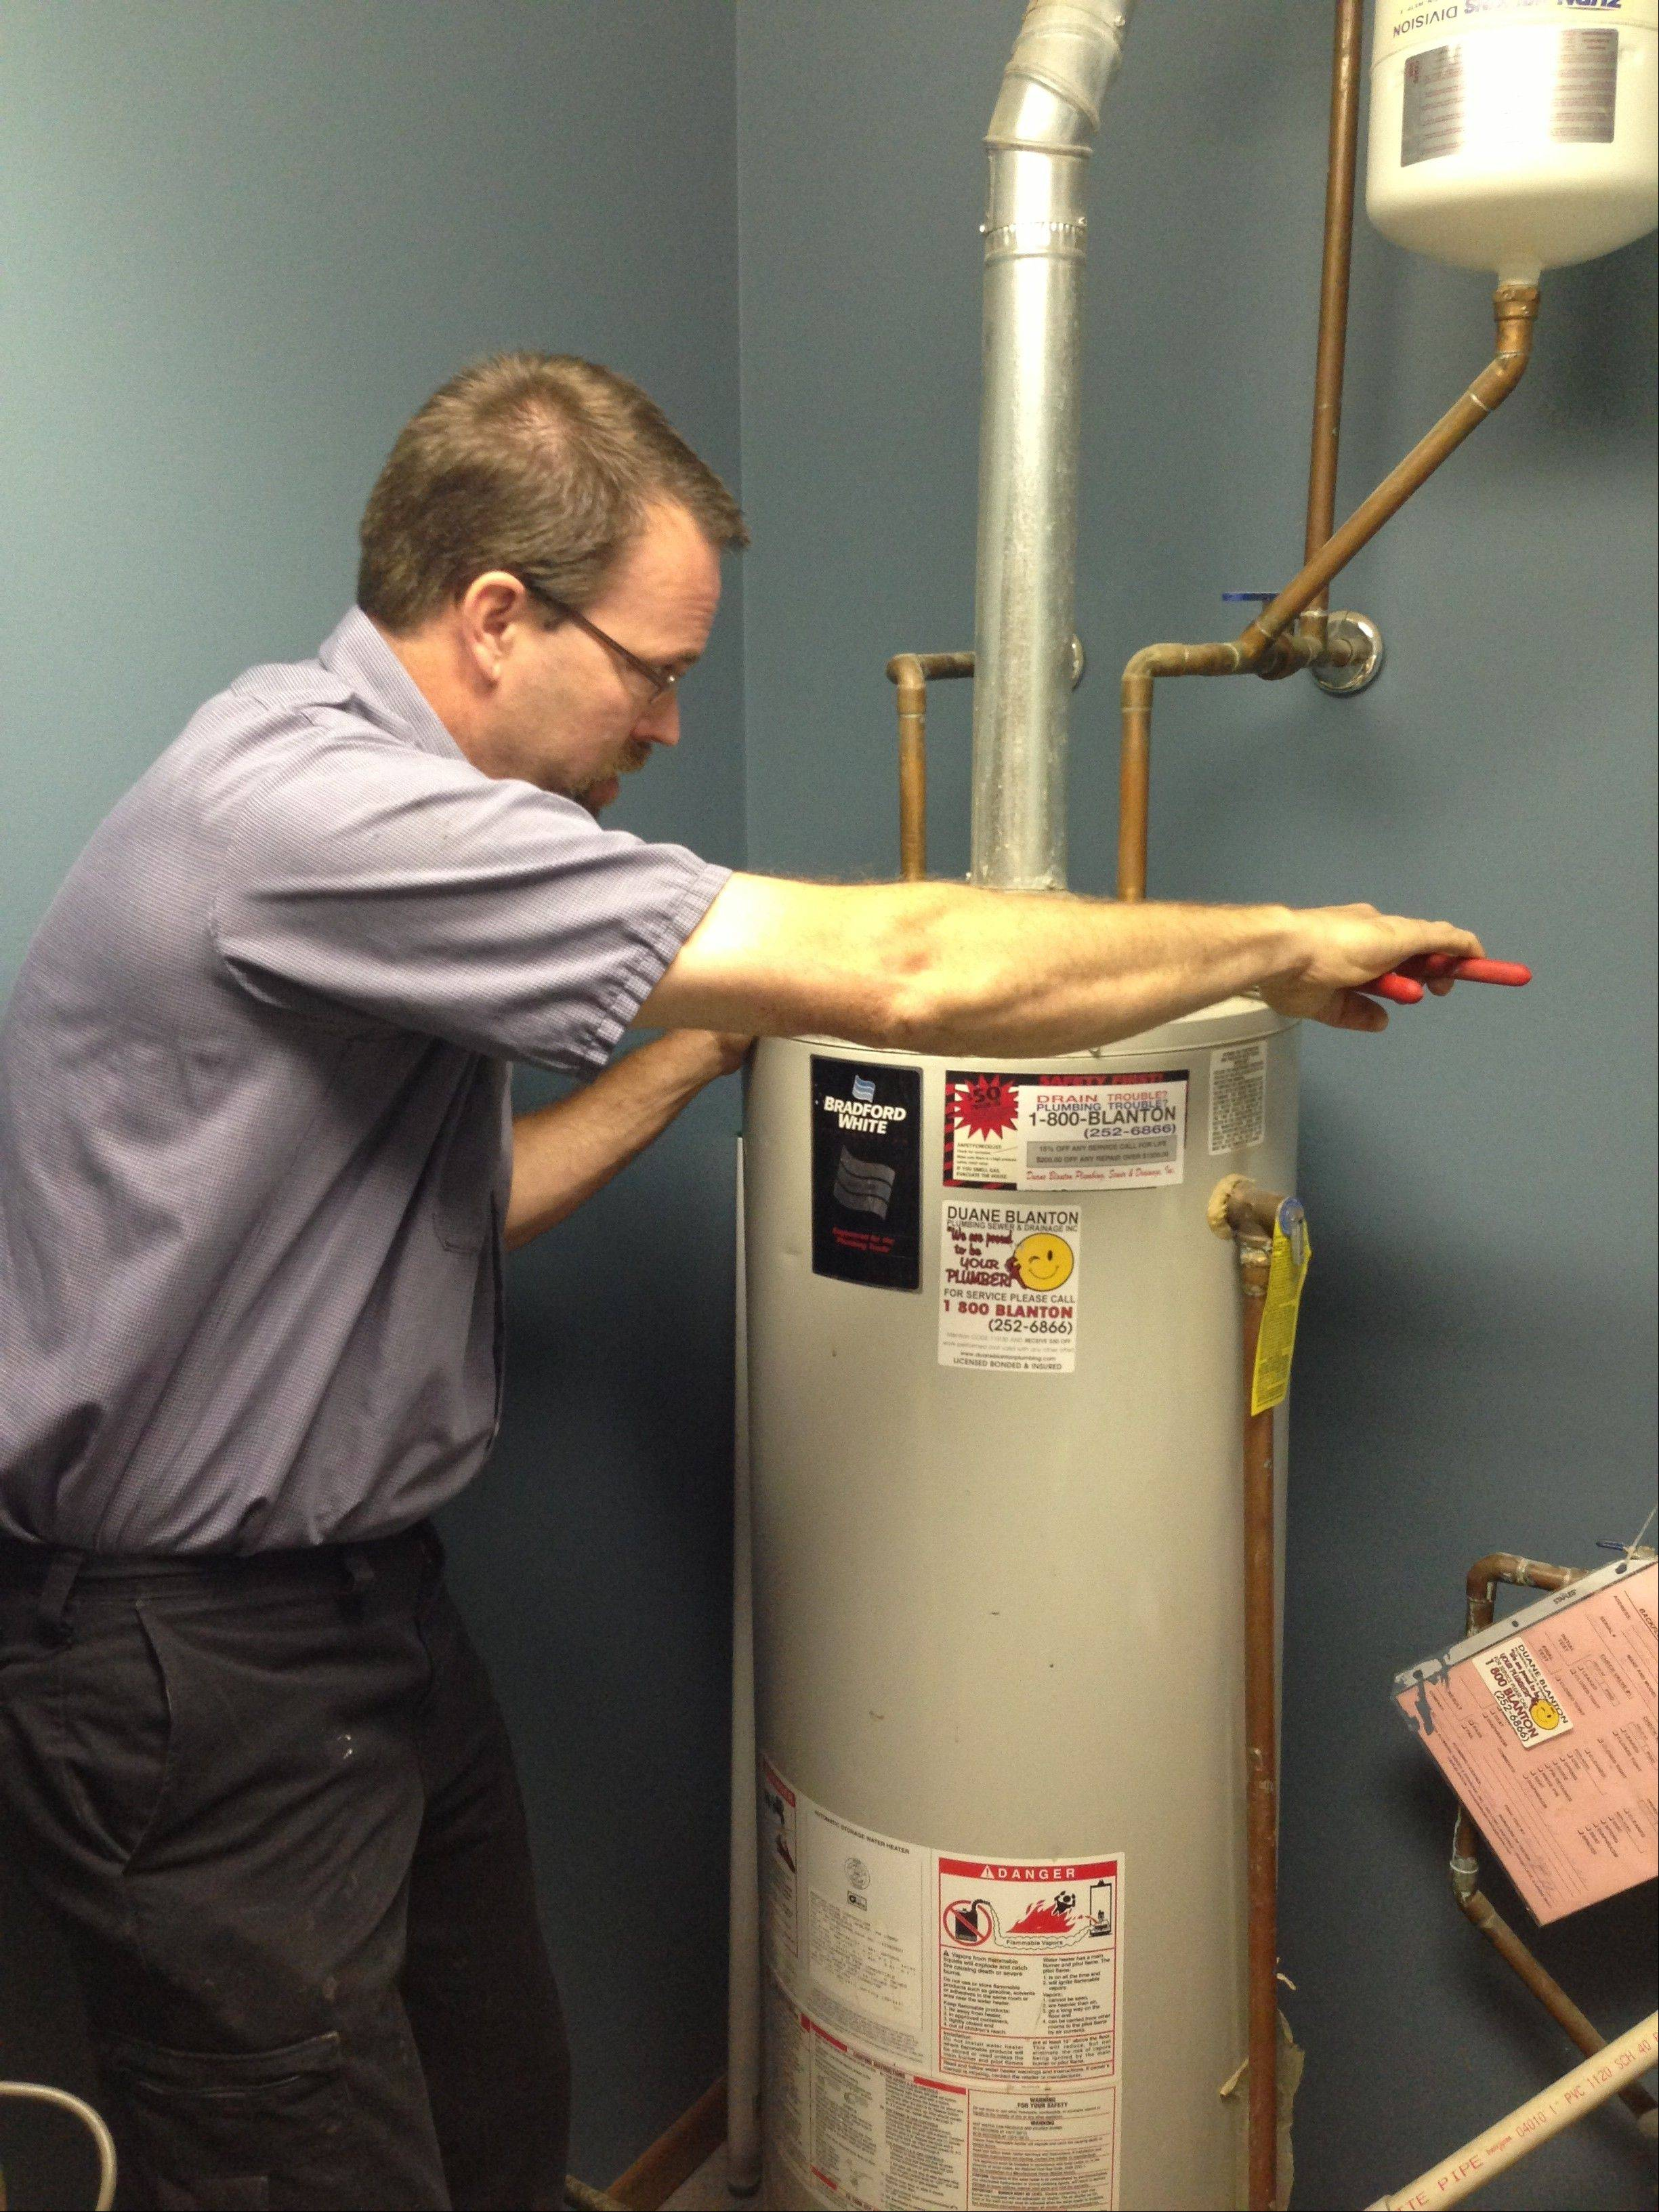 A plumber with Duane Blanton Plumbing installs a new water heater.